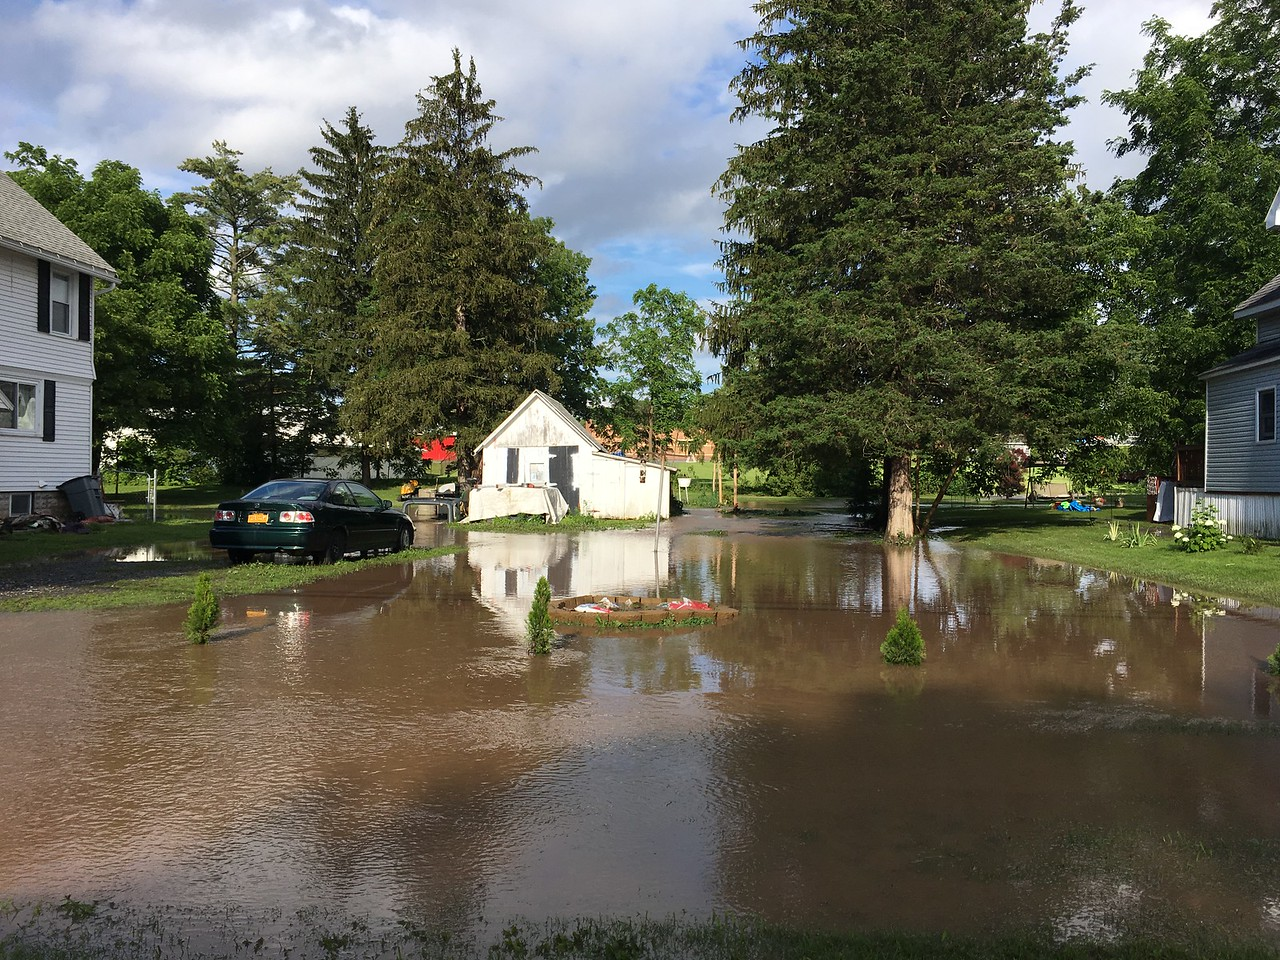 Andrew Aurigema - Oneida Daily Dispatch Several homes in Canastota were flooded following heavy rains on Saturday, July 1, 2017.